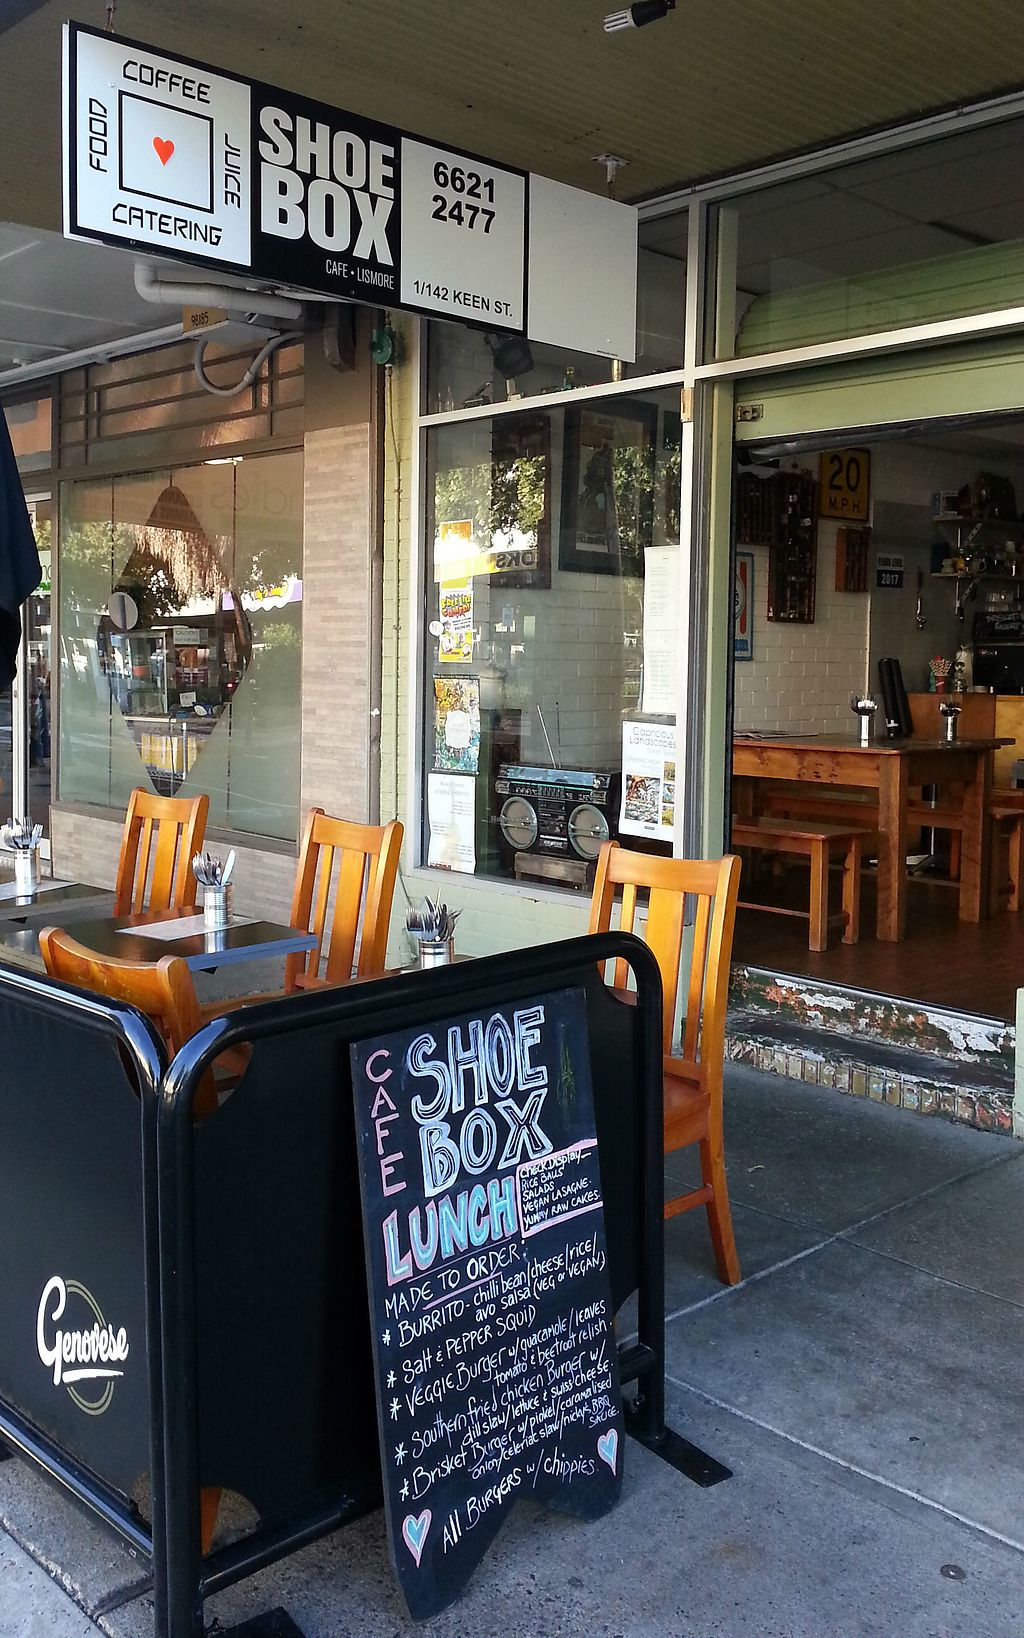 """Photo of The ShoeBox Cafe  by <a href=""""/members/profile/sunsatori"""">sunsatori</a> <br/>The ShoeBox Cafe Lismore <br/> October 23, 2017  - <a href='/contact/abuse/image/103464/318140'>Report</a>"""